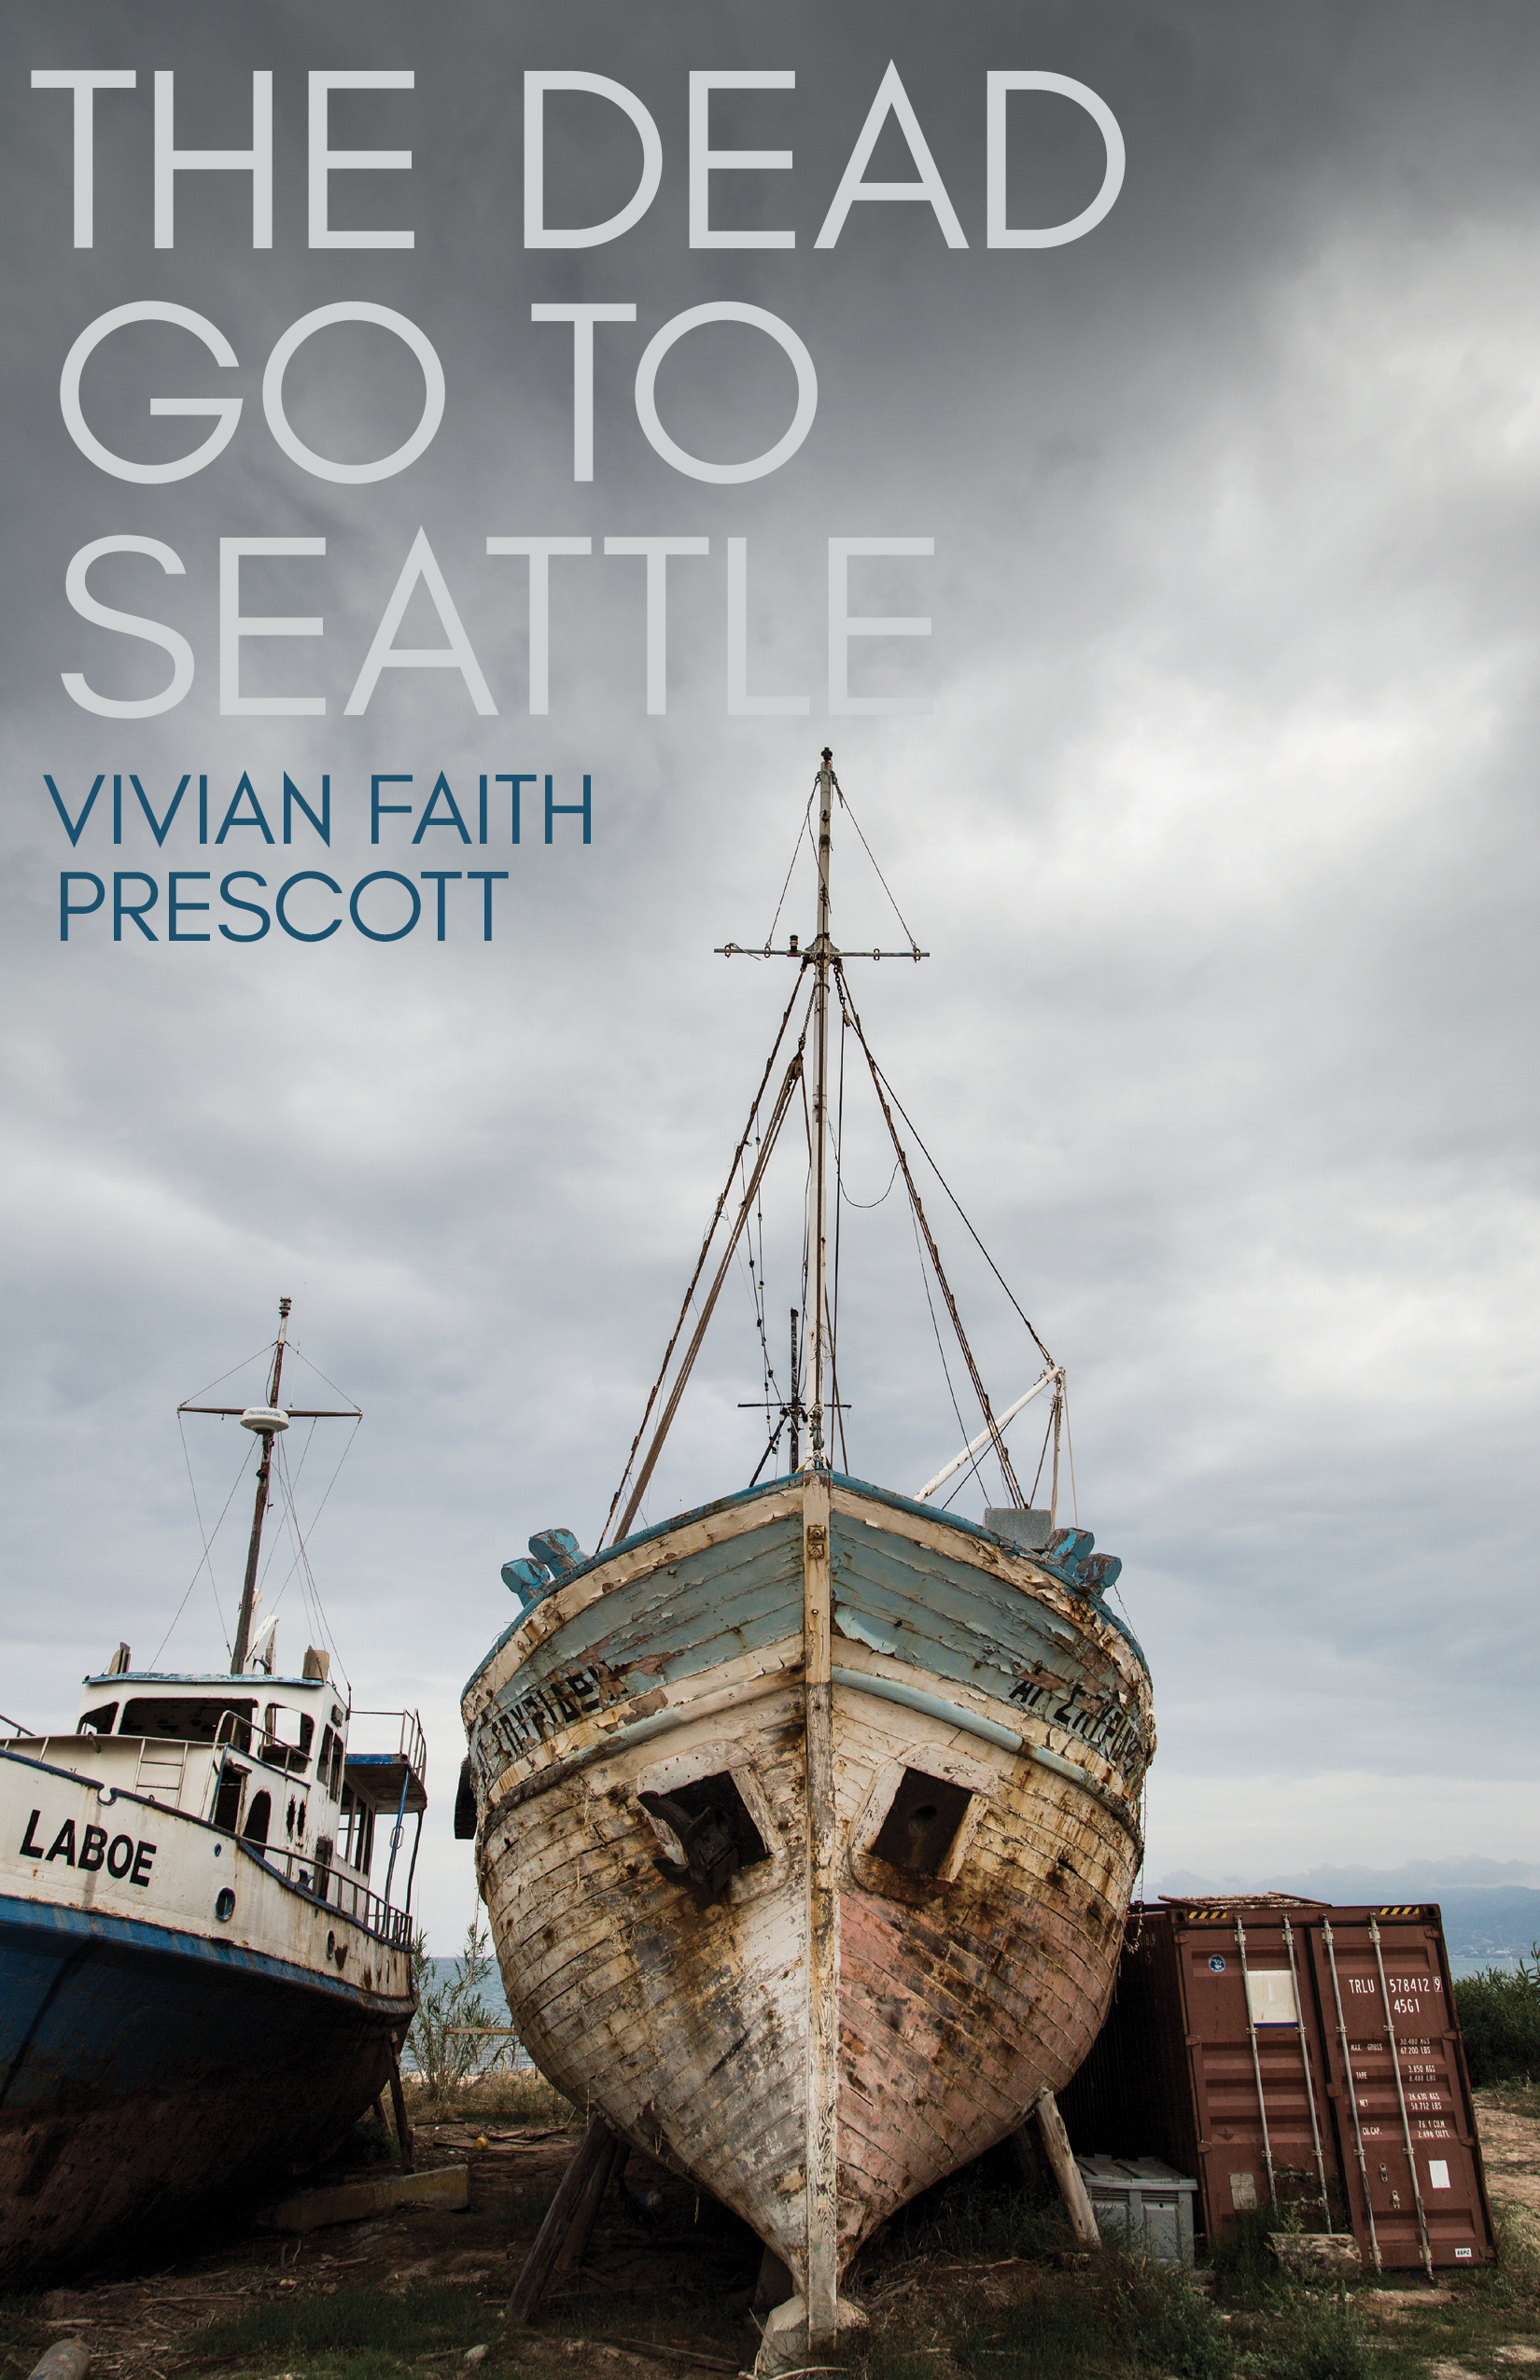 A photograph of an old boat next to a storage container near a body of water and white script that reads The Dead go to Seattle by Vivian Faith Prescott.